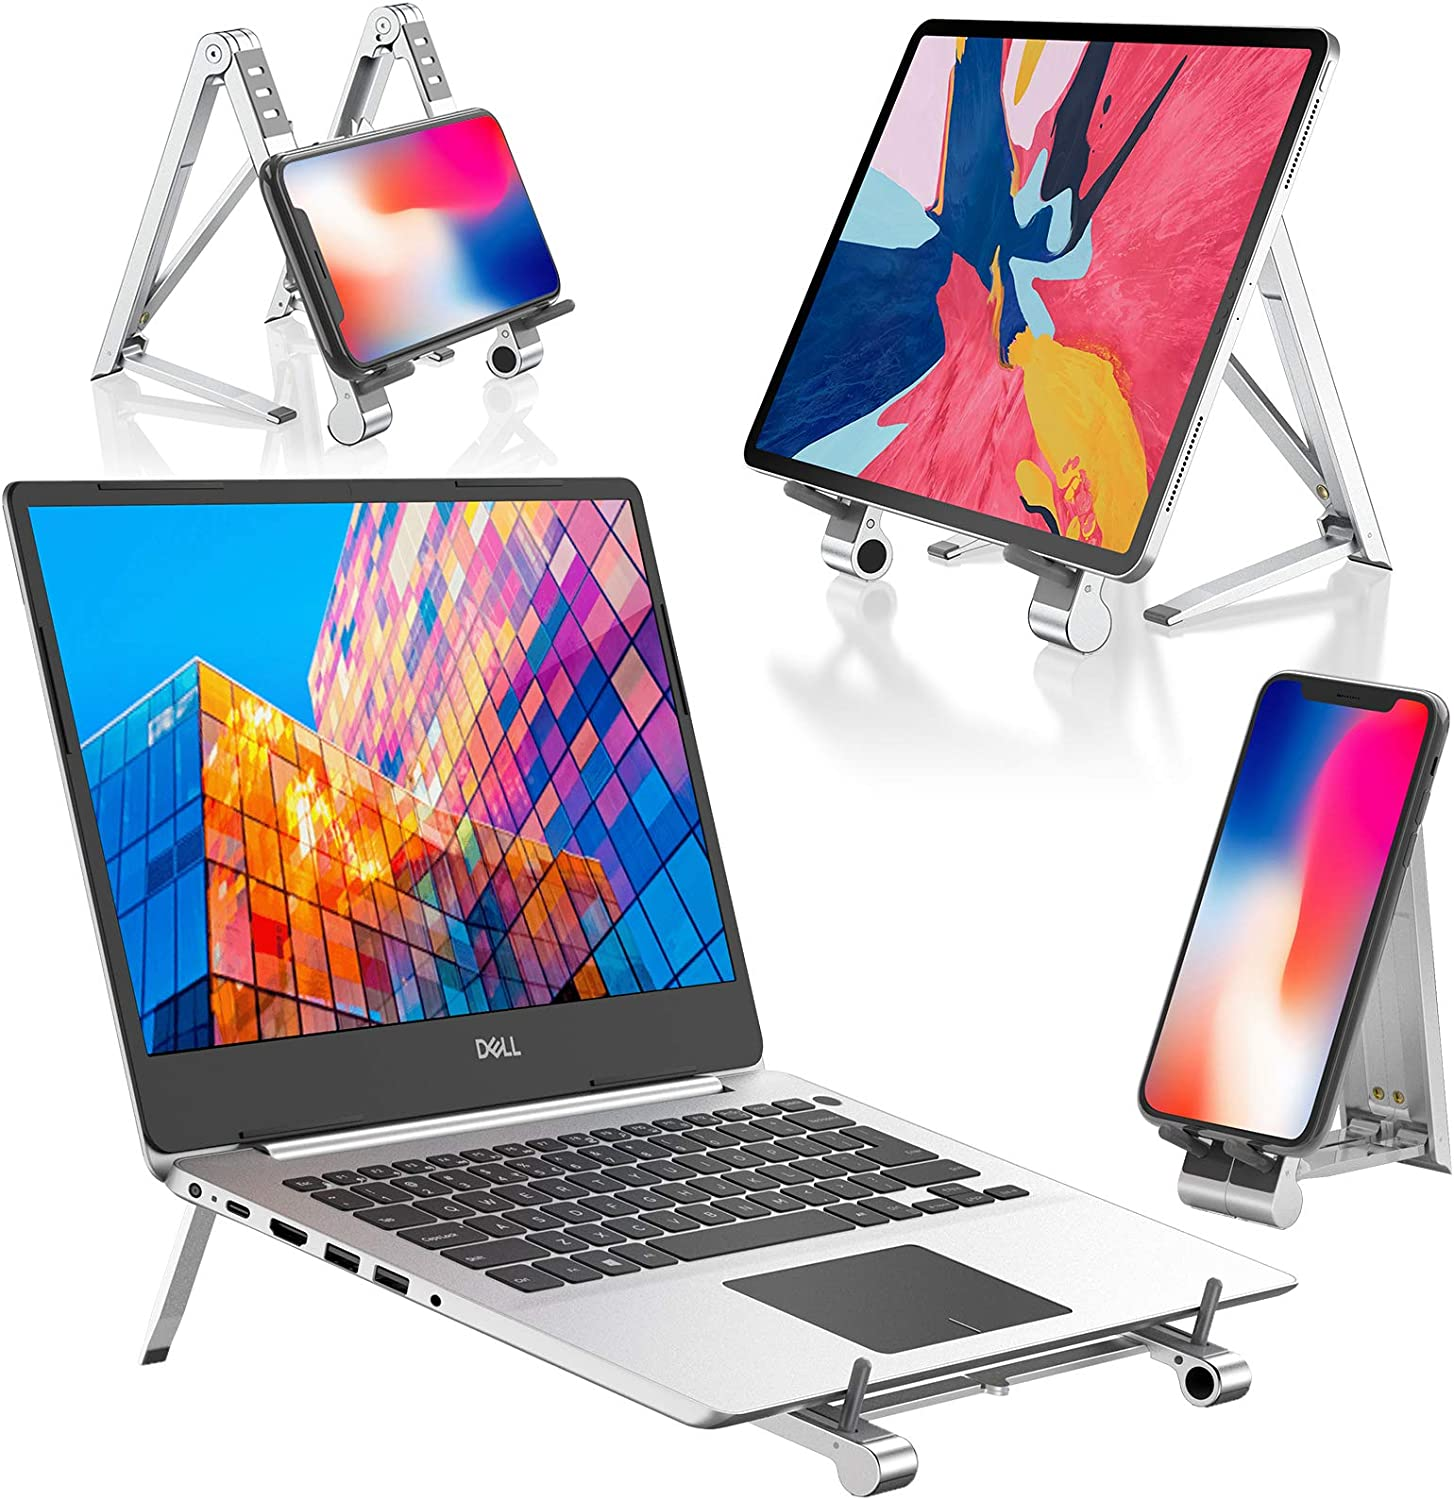 LOFTer Laptop Riser Stand Portable Tablet Adjustable Holder Ergonomic Computer Notebook Stand for Desk Foldable Phone Stand Laptop Lift Compatible MacBook Air Pro/ Dell XPS / iPad / iPhone 4-17""